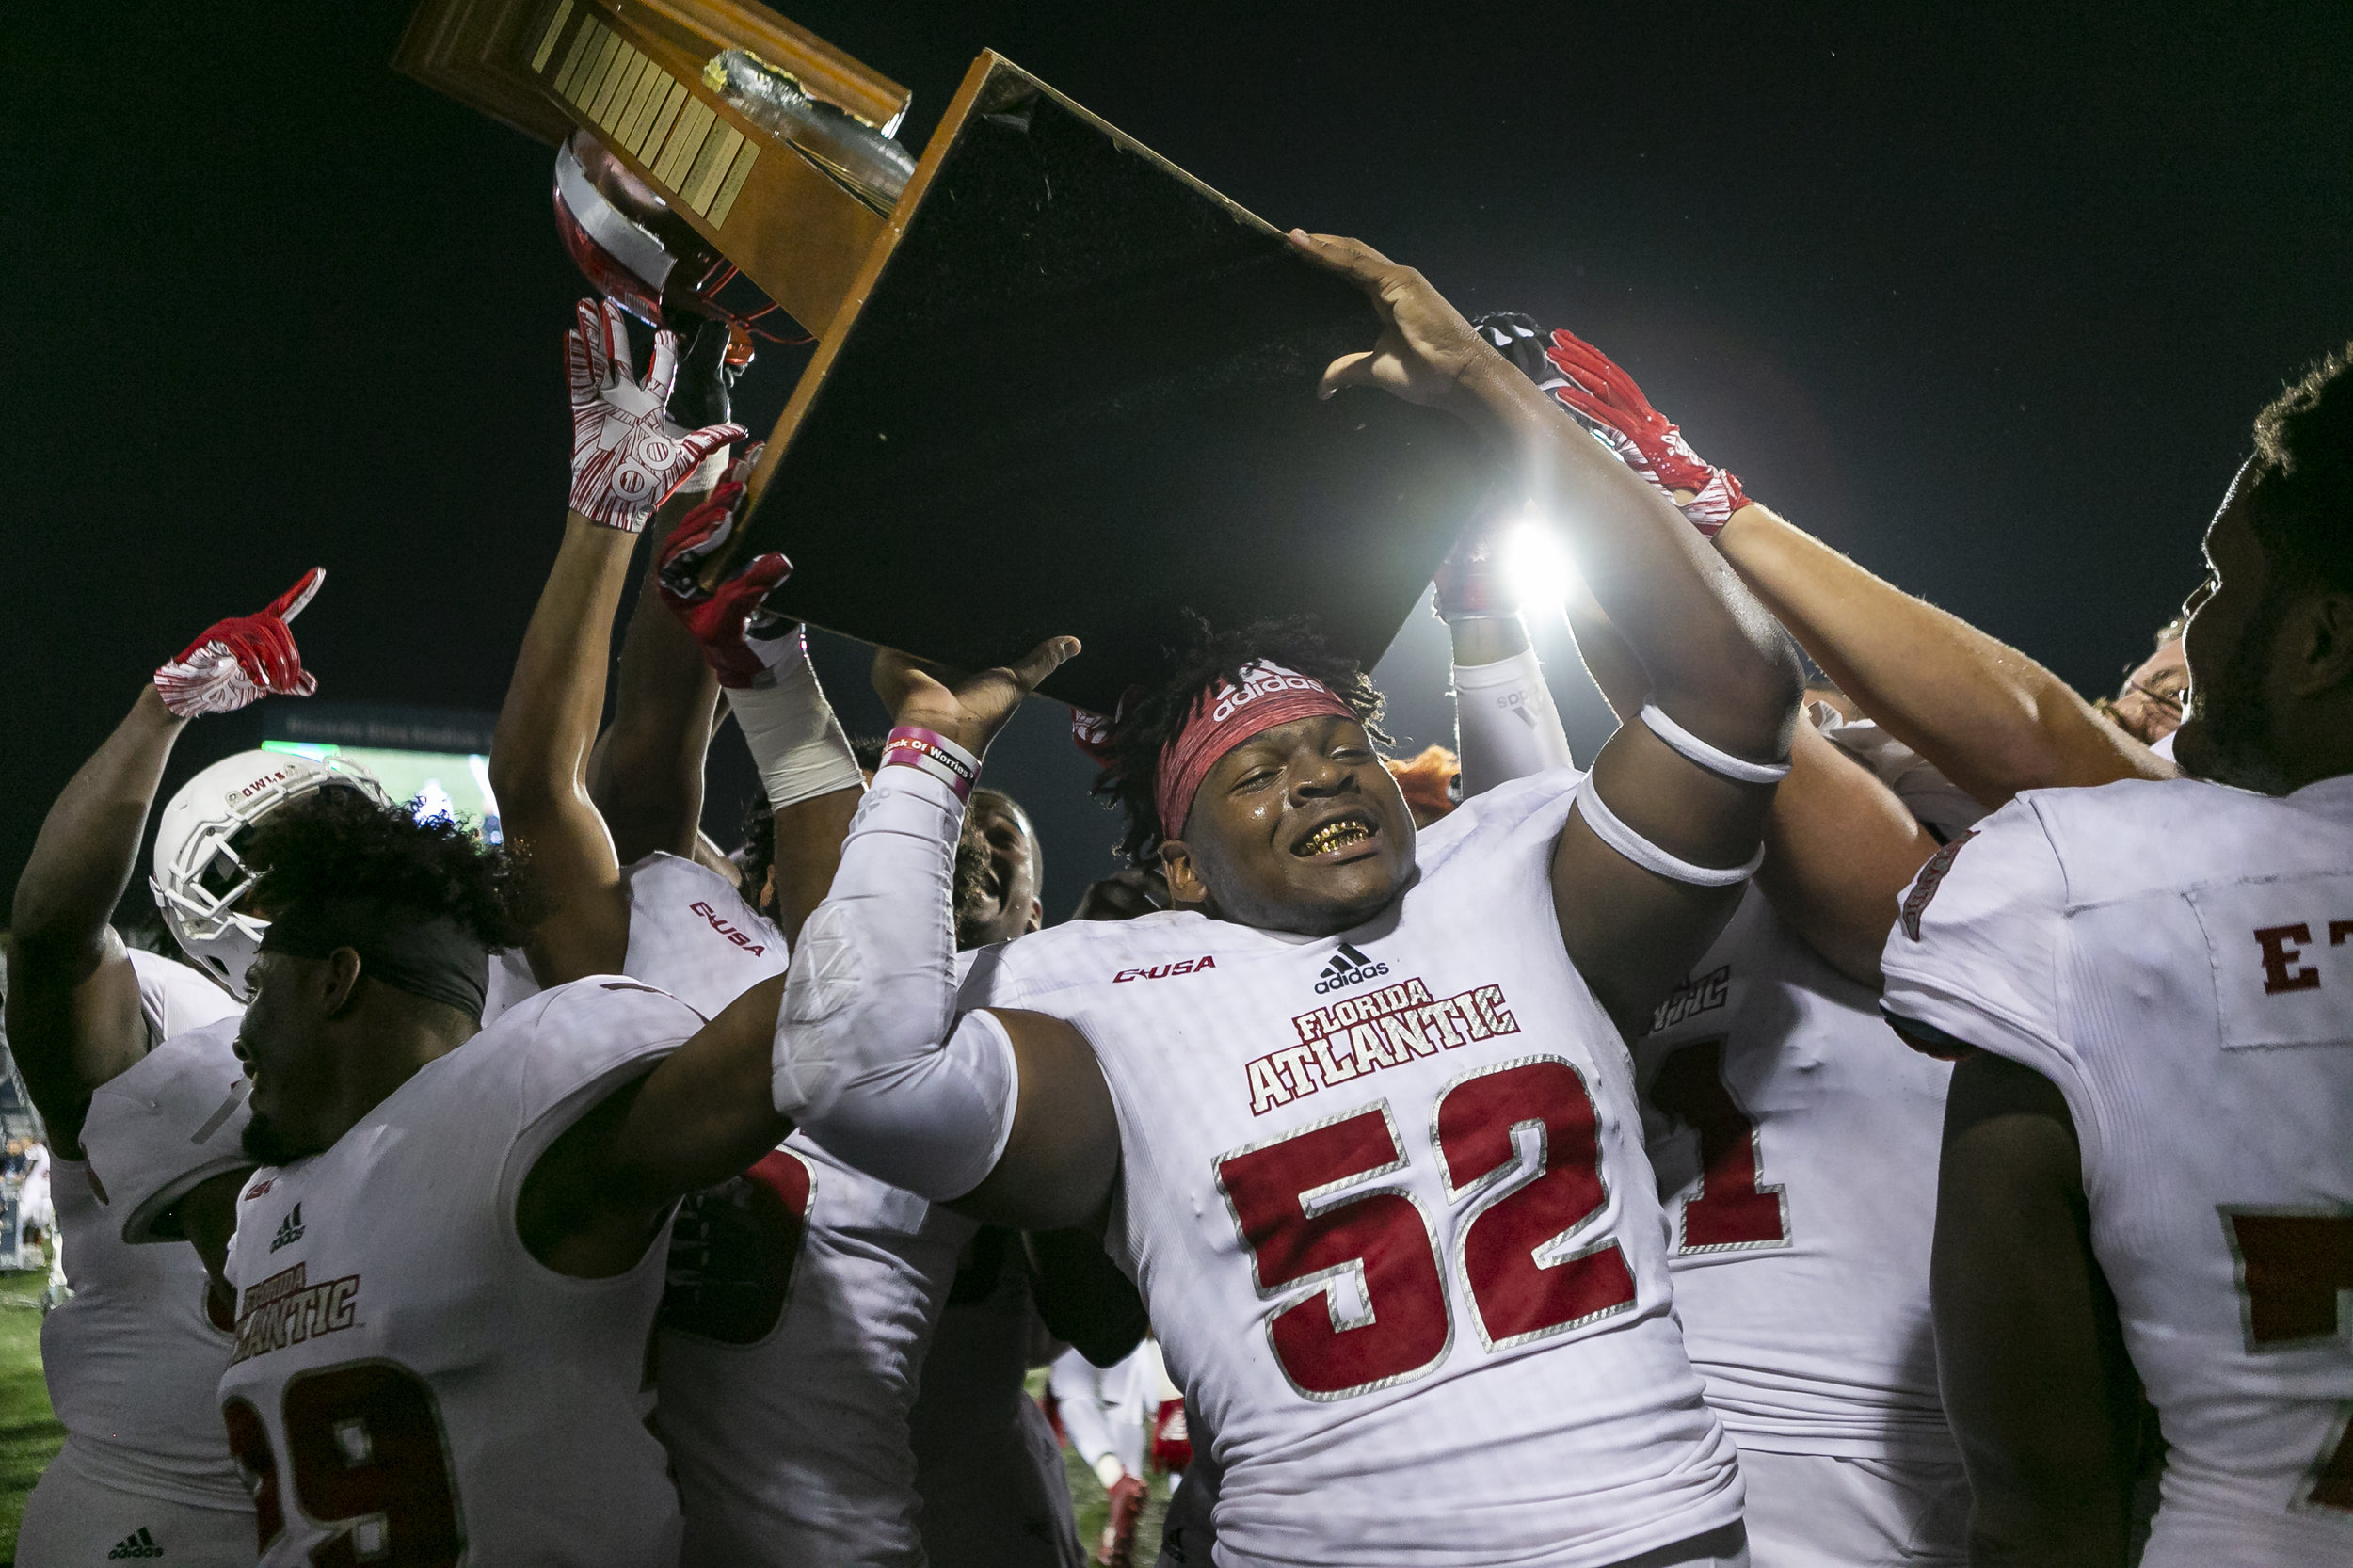 FAU defensive end Jaylen Joyner (52) holds the Shula Bowl XVII trophy after they defeated Florida International University 49 to 14 at the Riccardo Silva Stadium in Miami on Saturday, November 3, 2018.